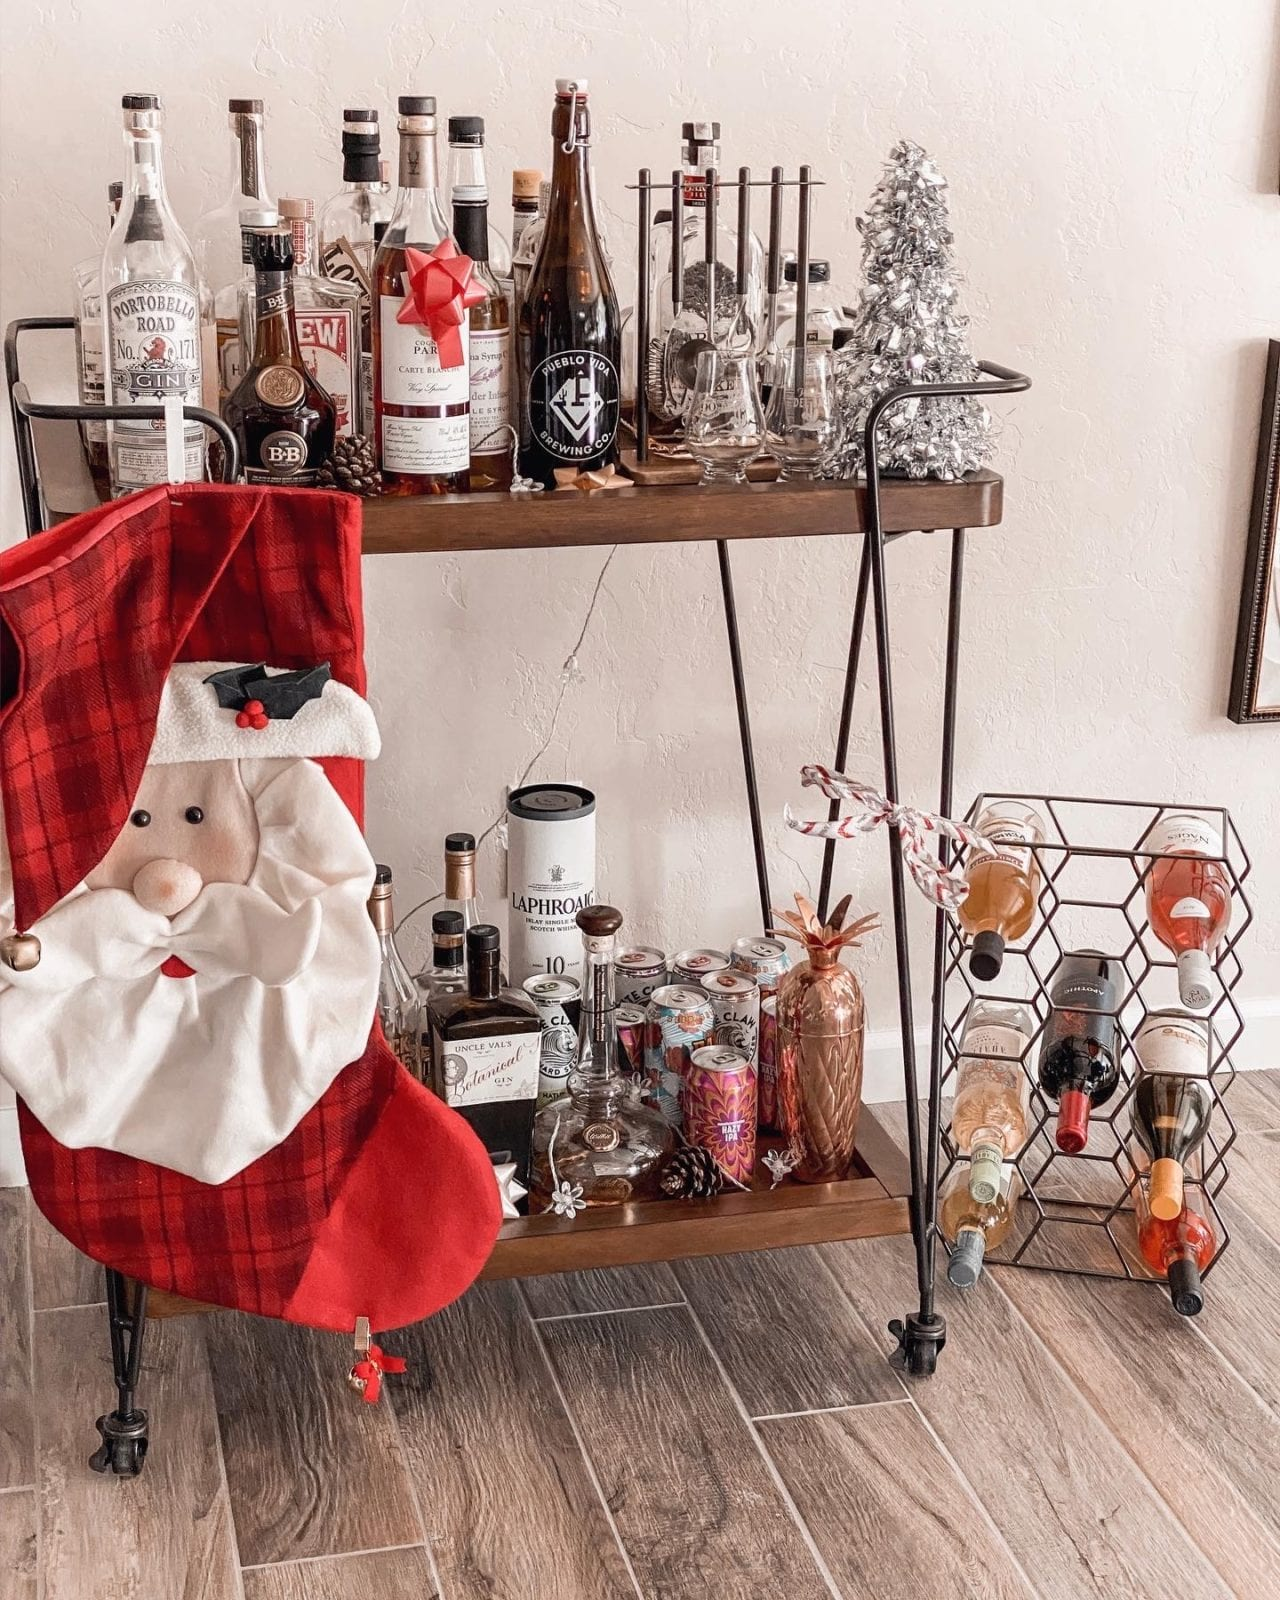 I decorated my bar cart for the holidays with a stocking, some flower lights, pinecones and ribbon throughout!